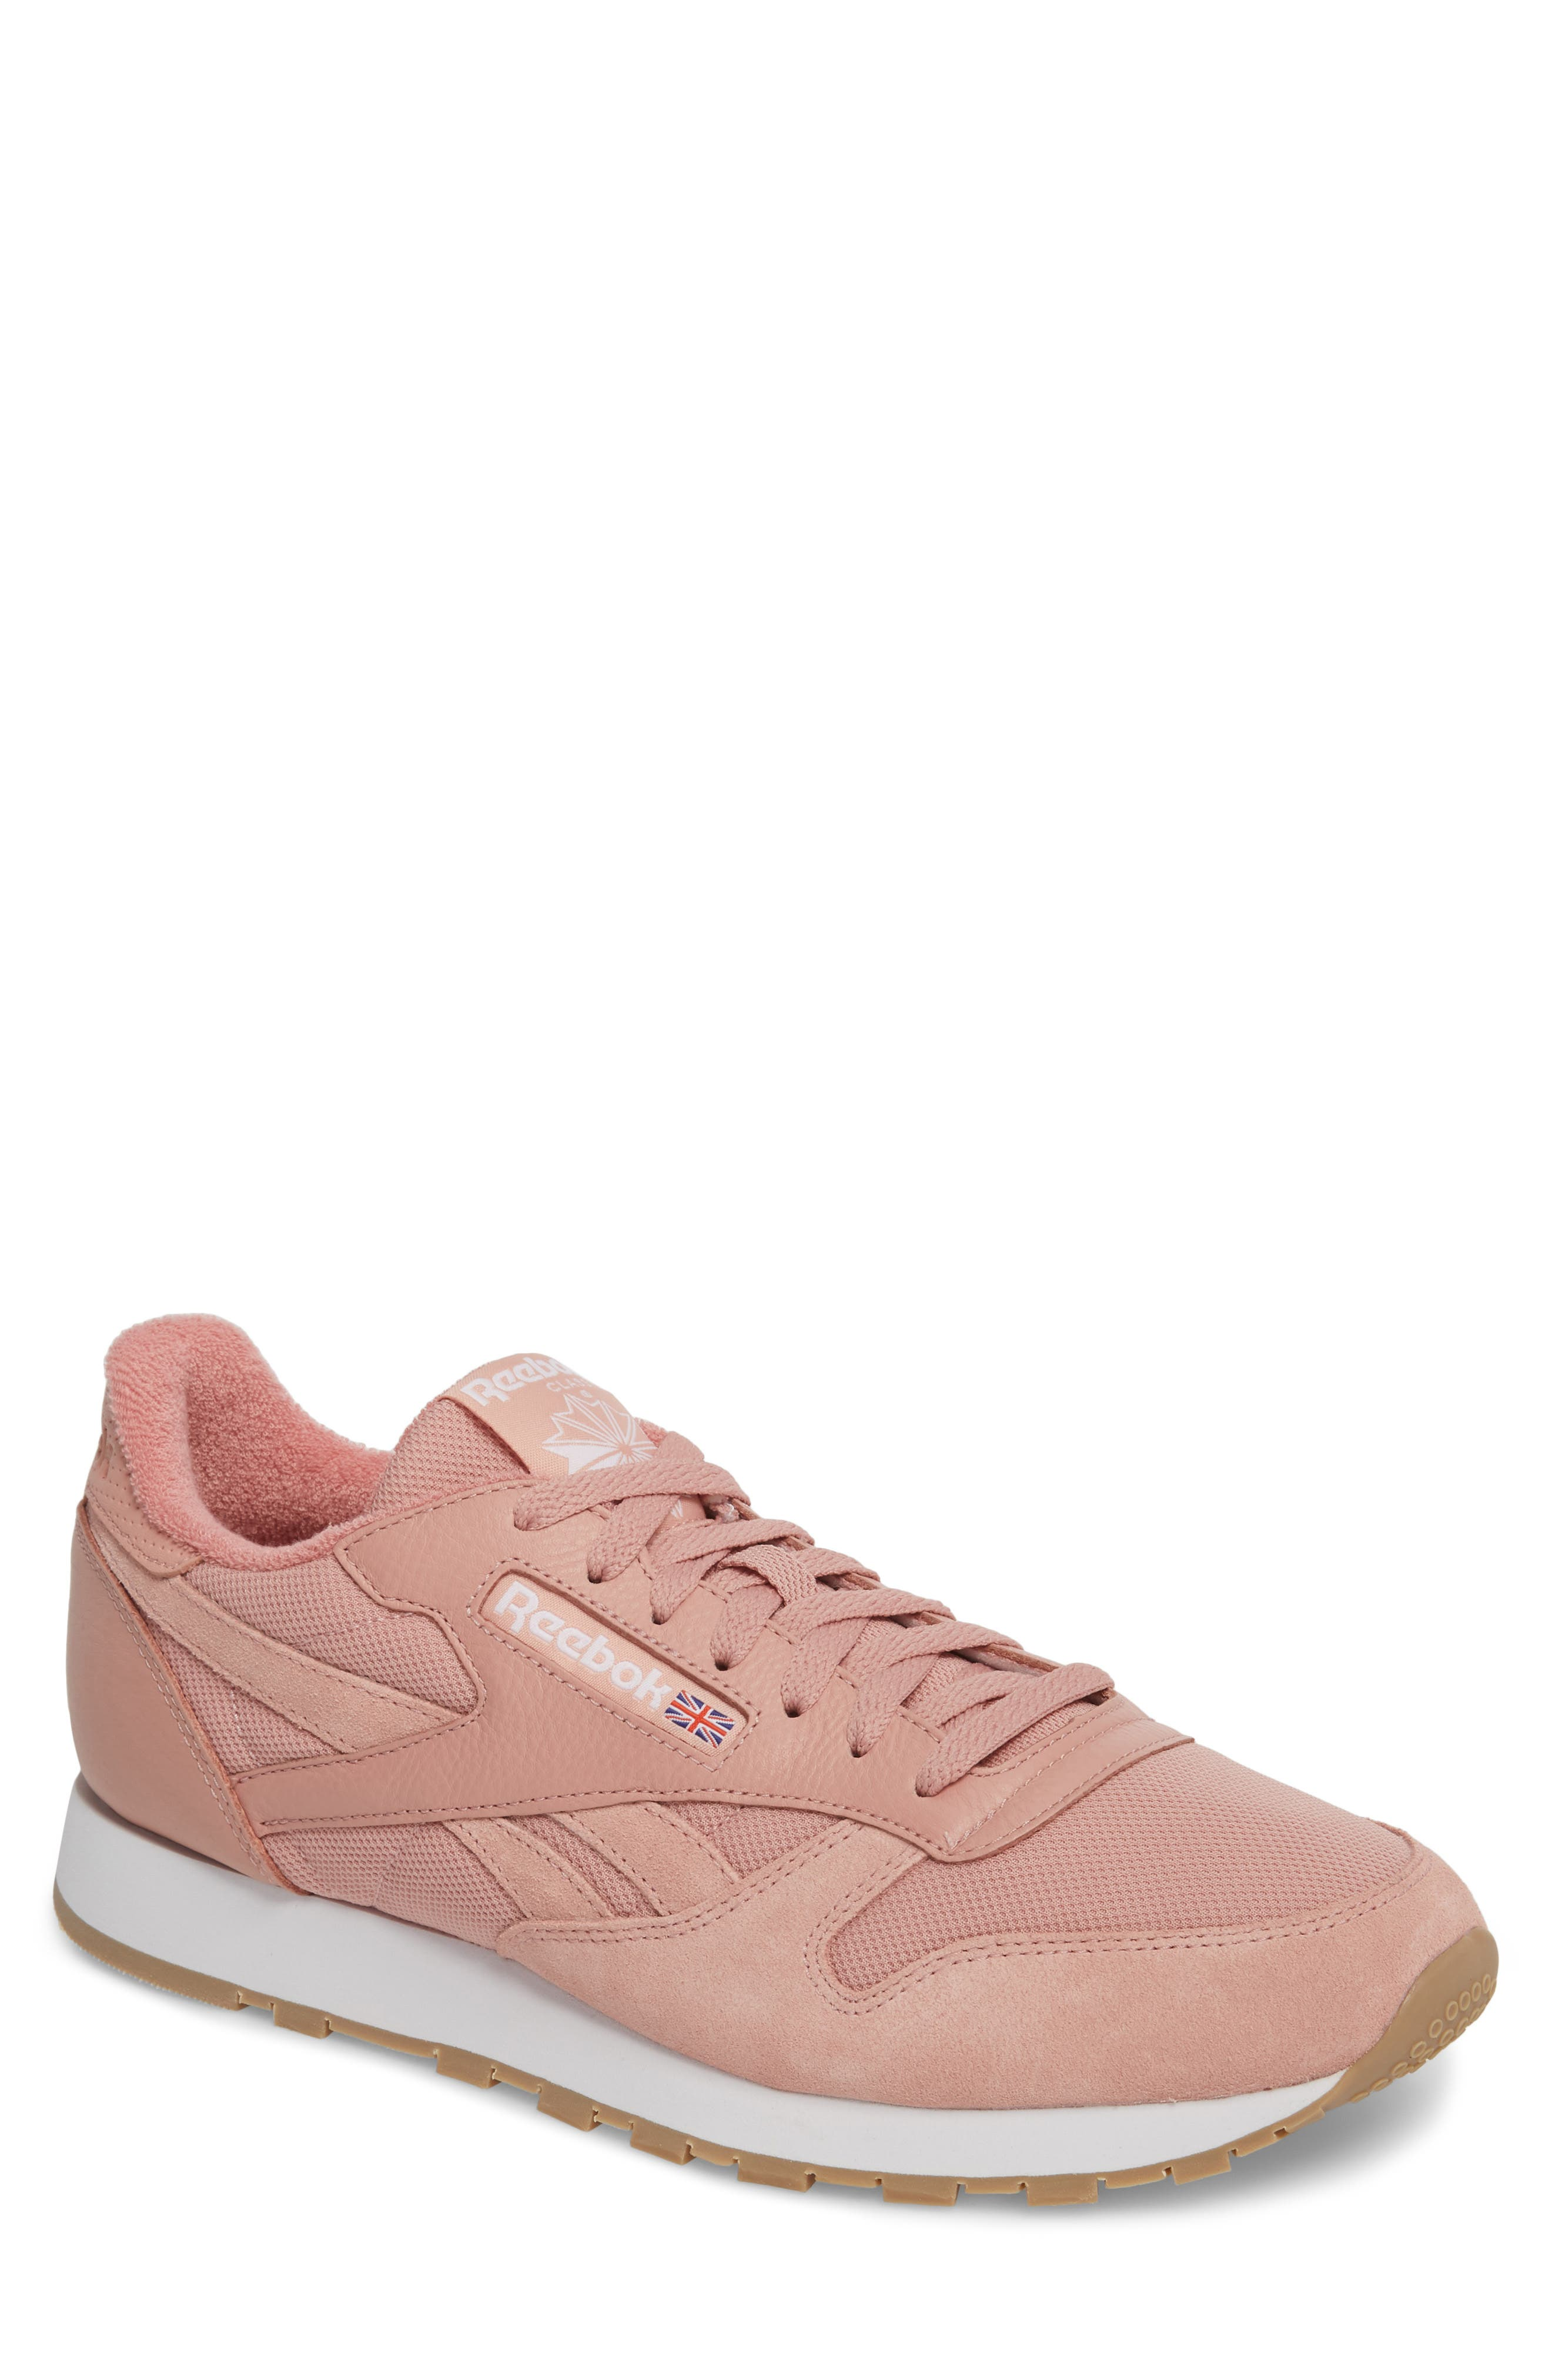 ESTL Classic Leather Sneaker,                         Main,                         color, Chalk Pink/ White